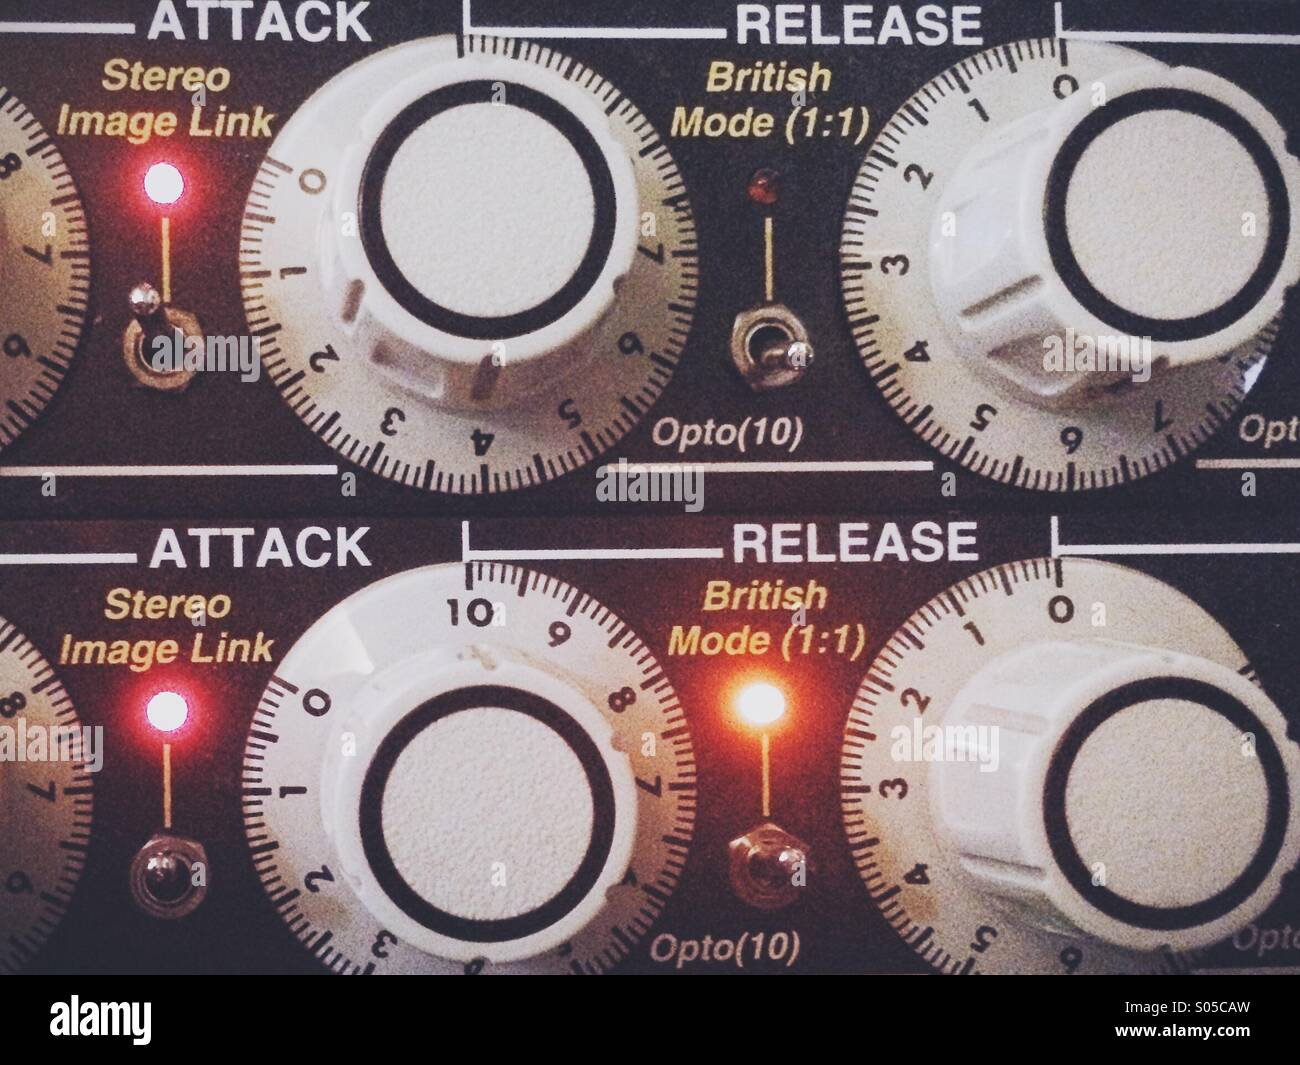 Attack Release - Stock Image